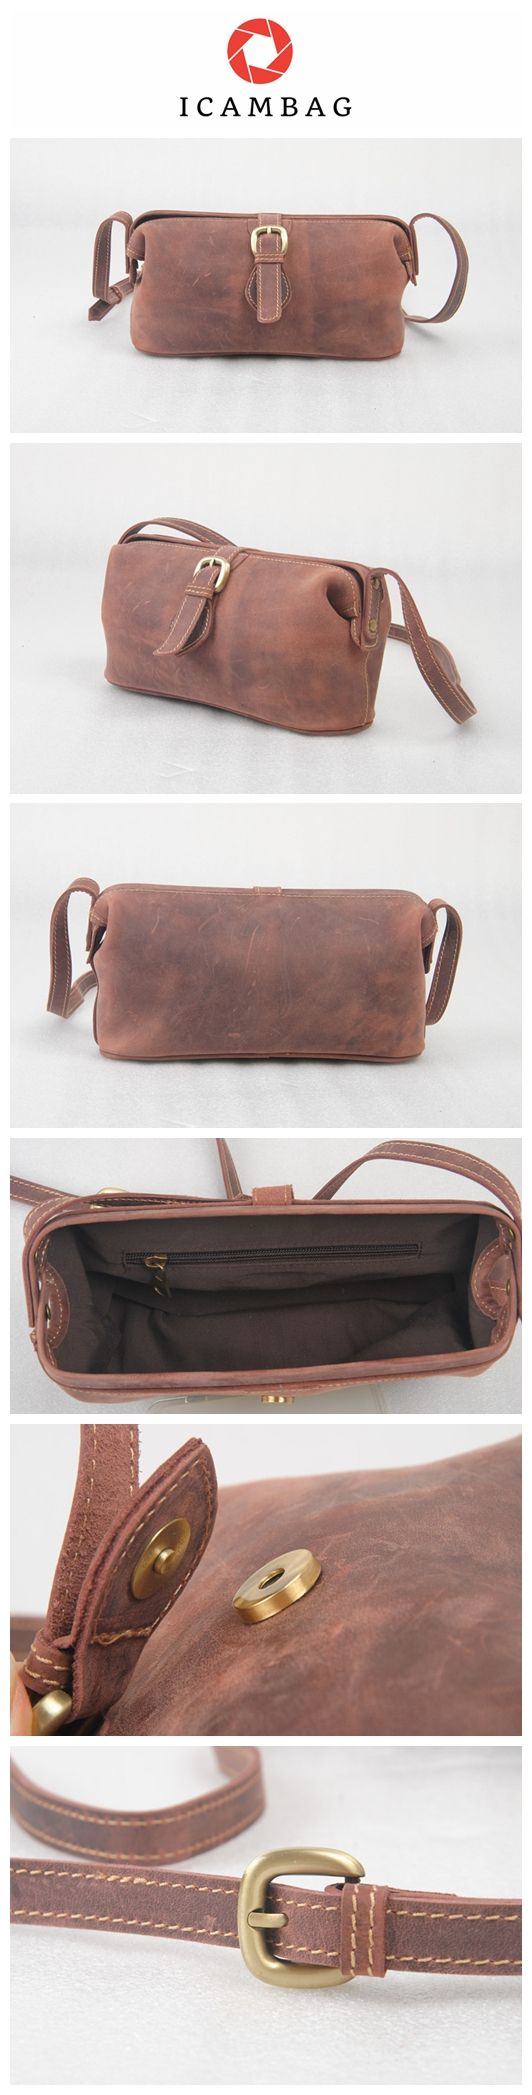 Genuine leather bag fashion crazy horse single shoulder bag slant cross-bag vintage commuter bag  503